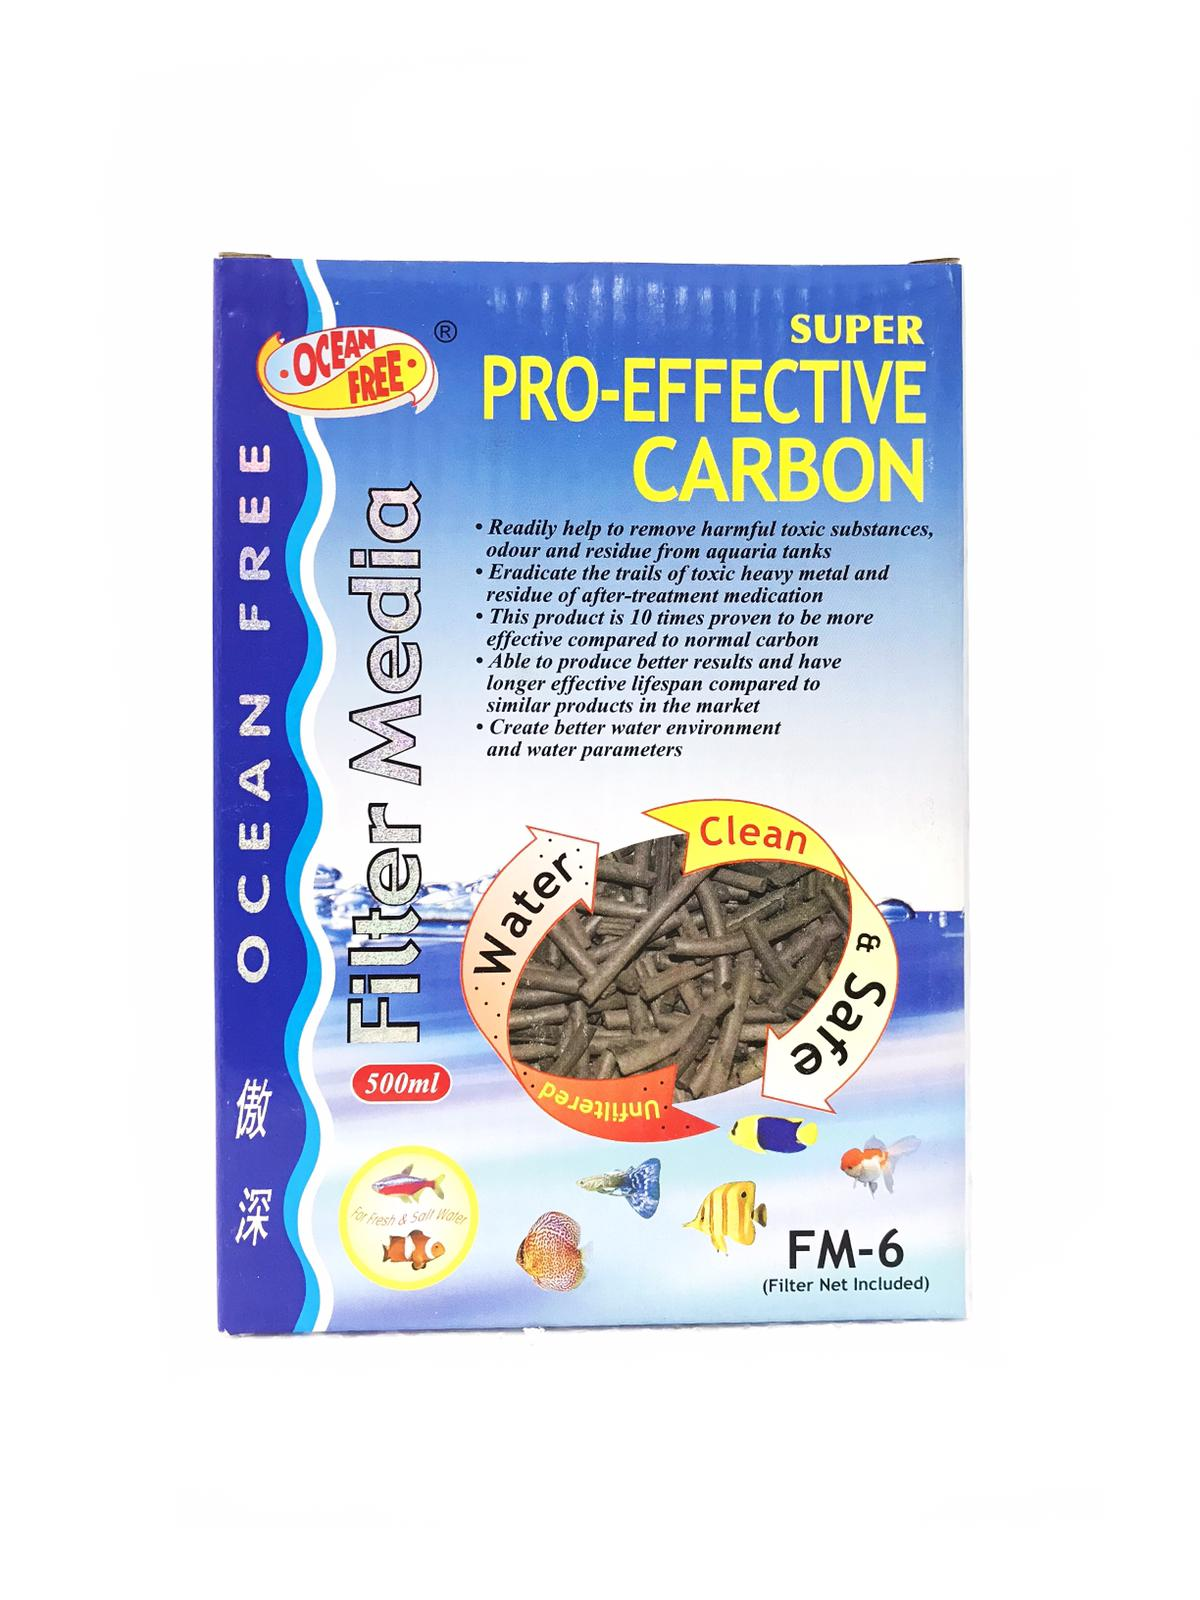 OF Super Pro-Effective Carbon FM-6